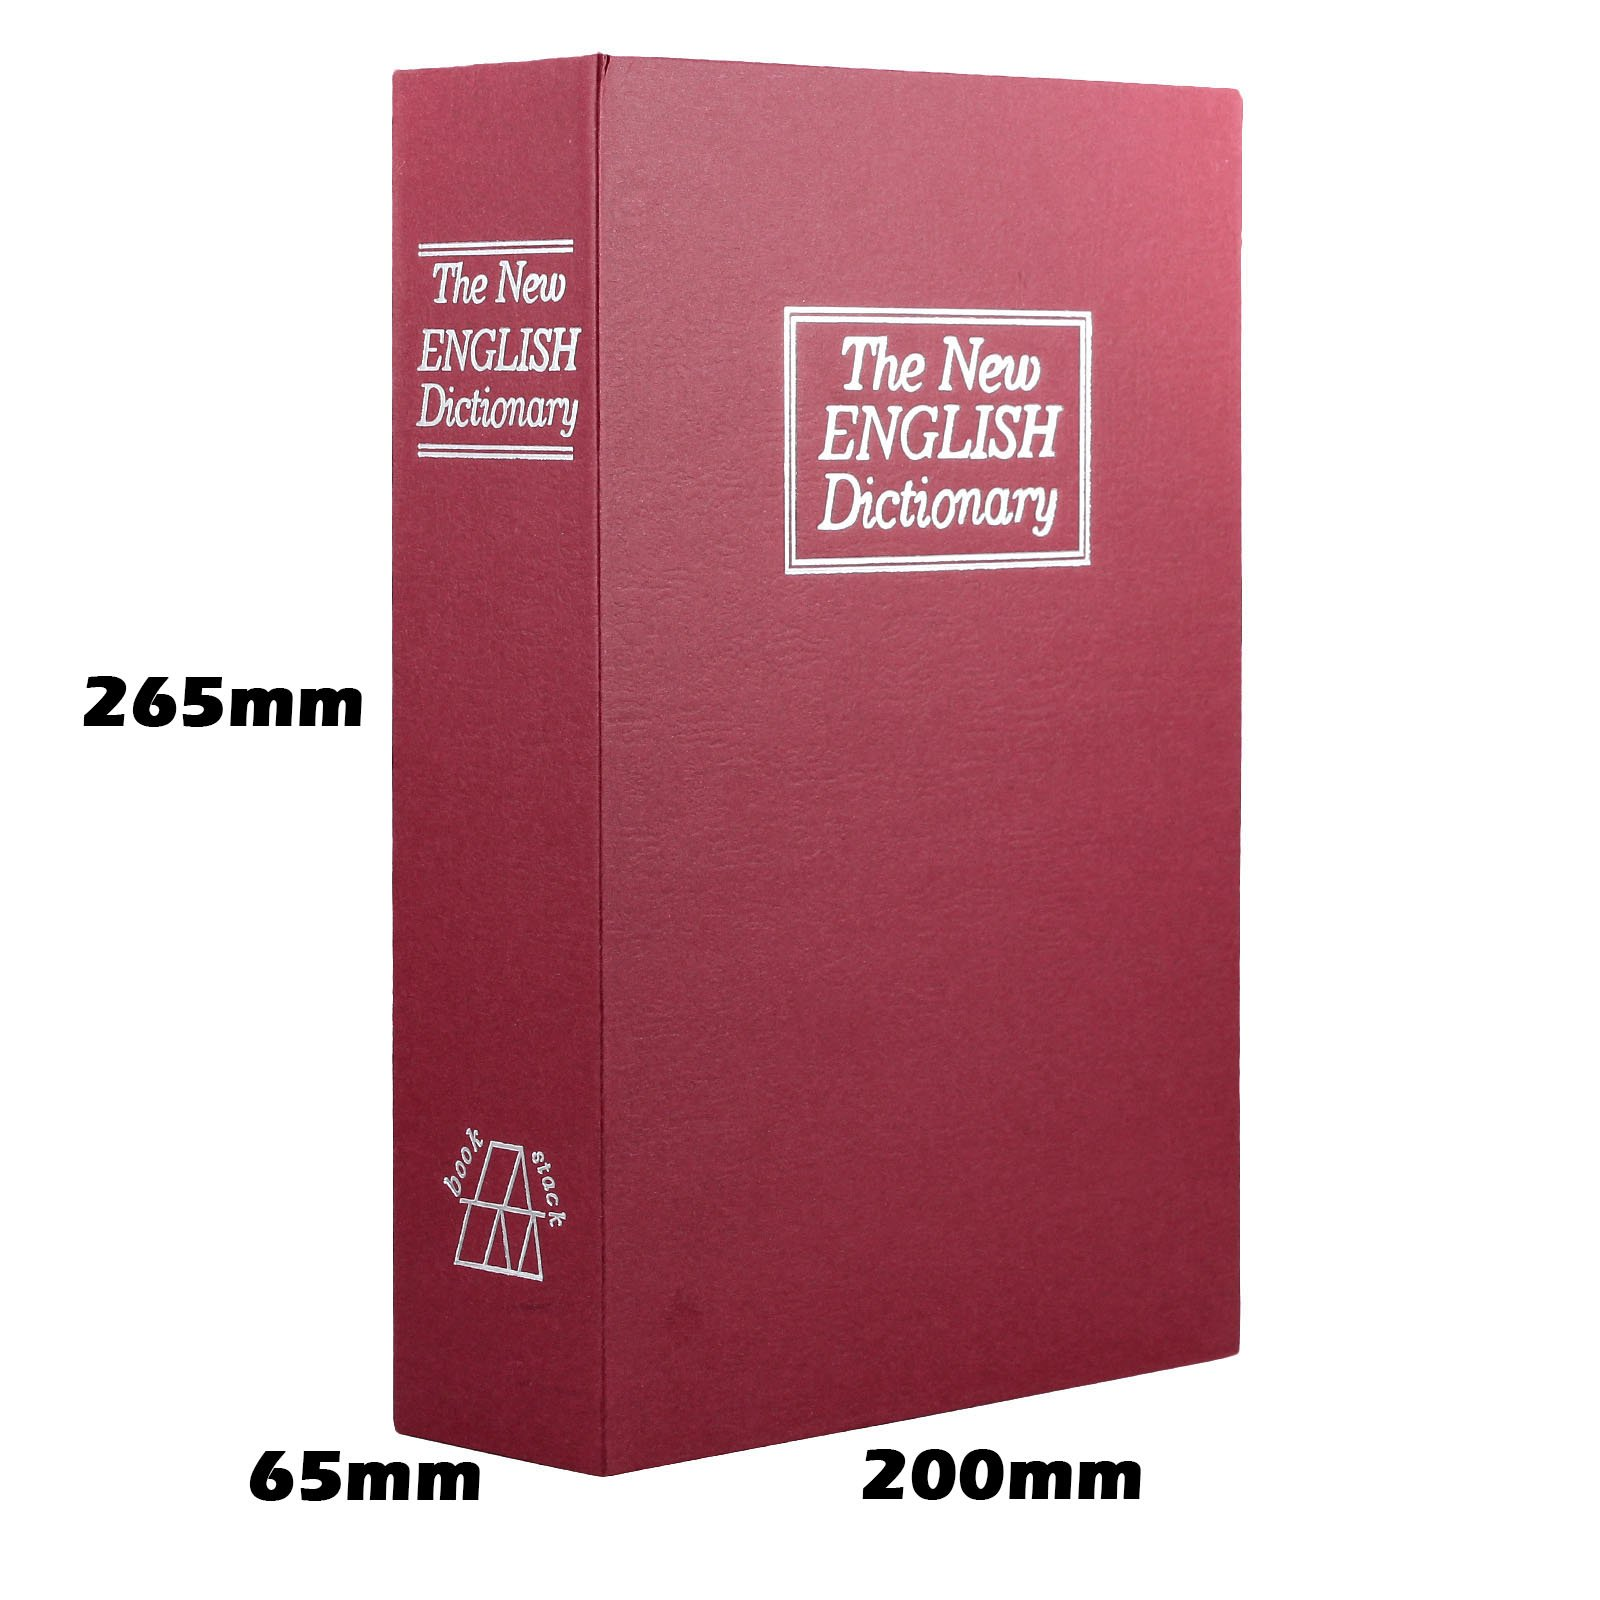 Champs Dictionary Diversion Book Safe with Key Lock for Home, Business [Red, Metal, Large Size, 10.4in x 2.55in x 7.87in]